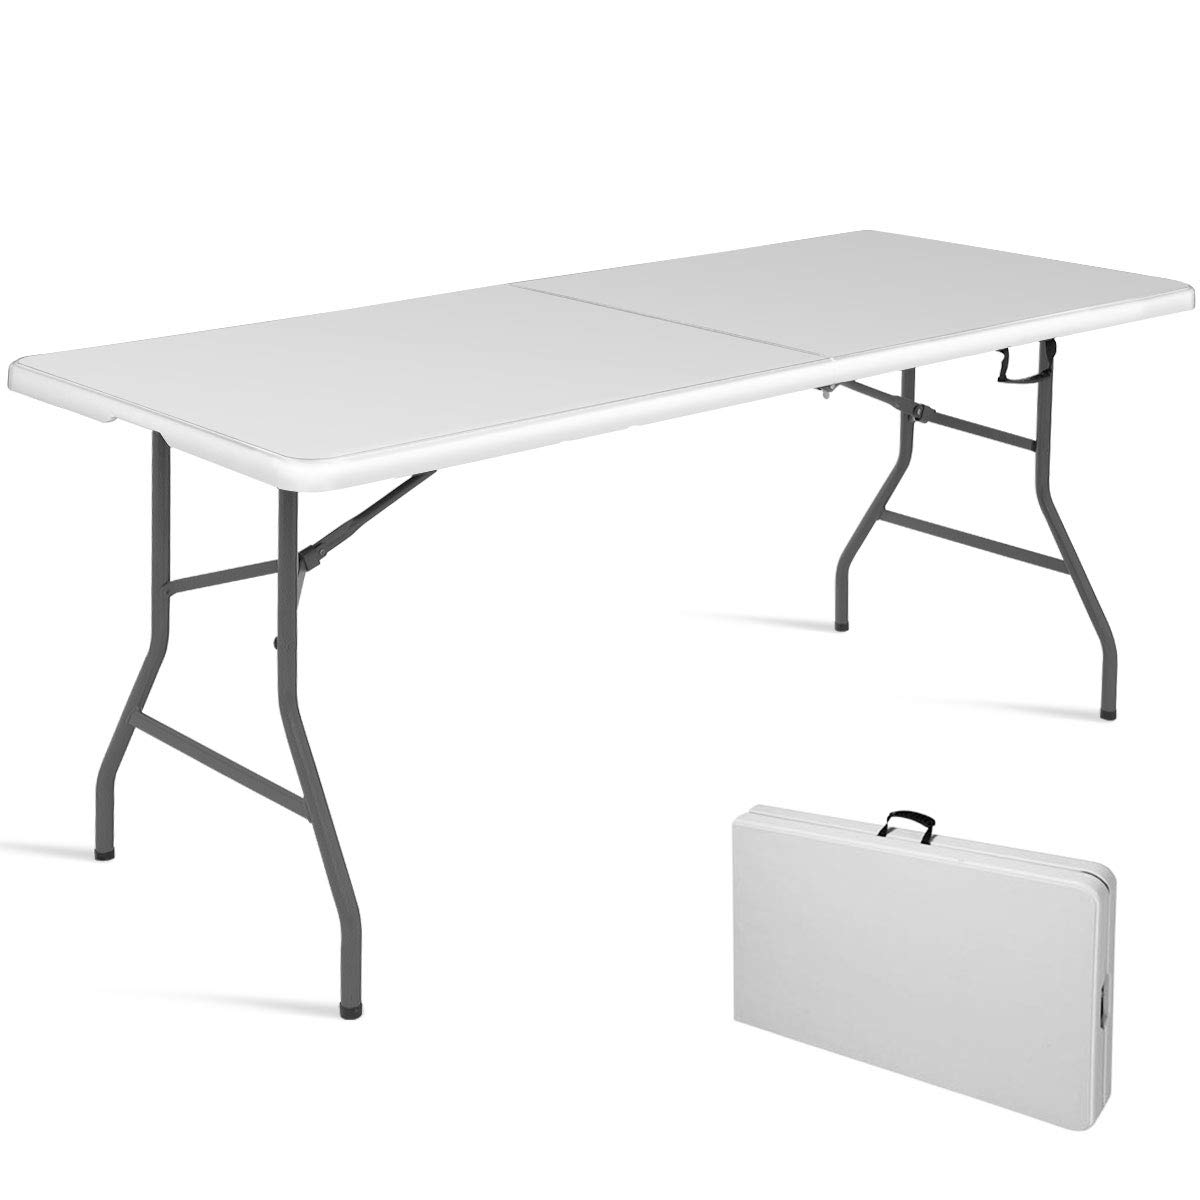 Goplus 6' Folding Table Indoor Outdoor Dining Camp Table Portable Plastic Picnic Table with Rounded Corners & Handle, Black (Off White) by Goplus